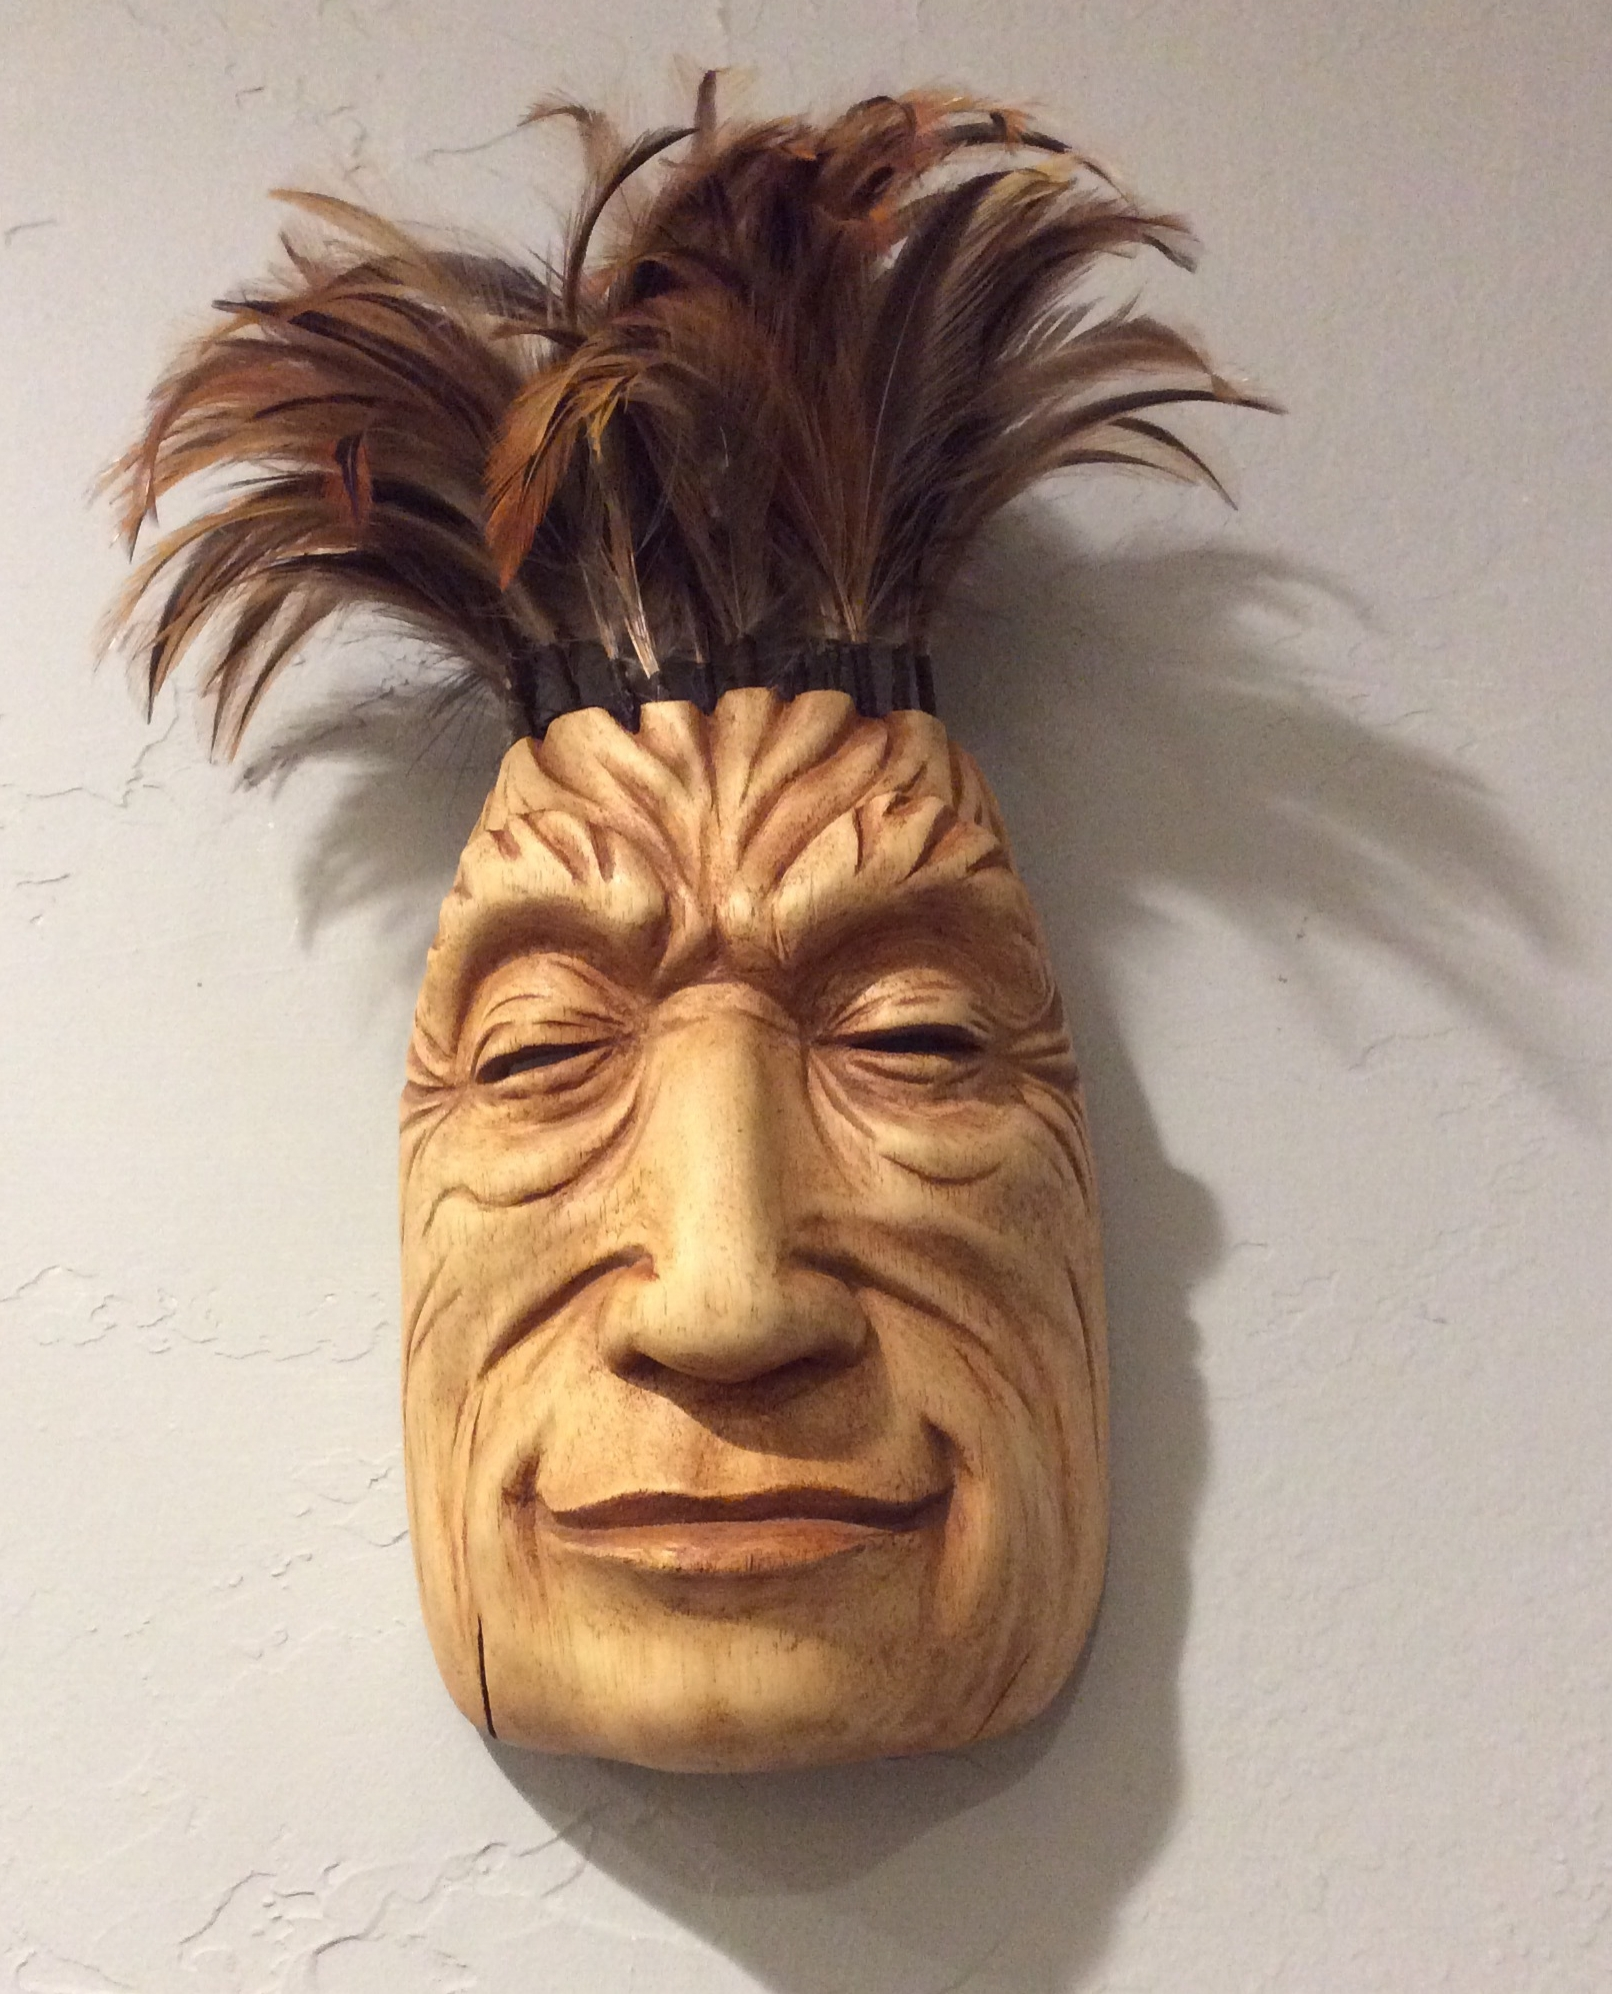 My mask from the second workshop was more playful. I didn't have an image in mind when I was carving but was trying for a peaceful smile. I had lots of fun making the feather duster hair. I actually took apart and reassembled a duster that I had been keeping for the feathers.